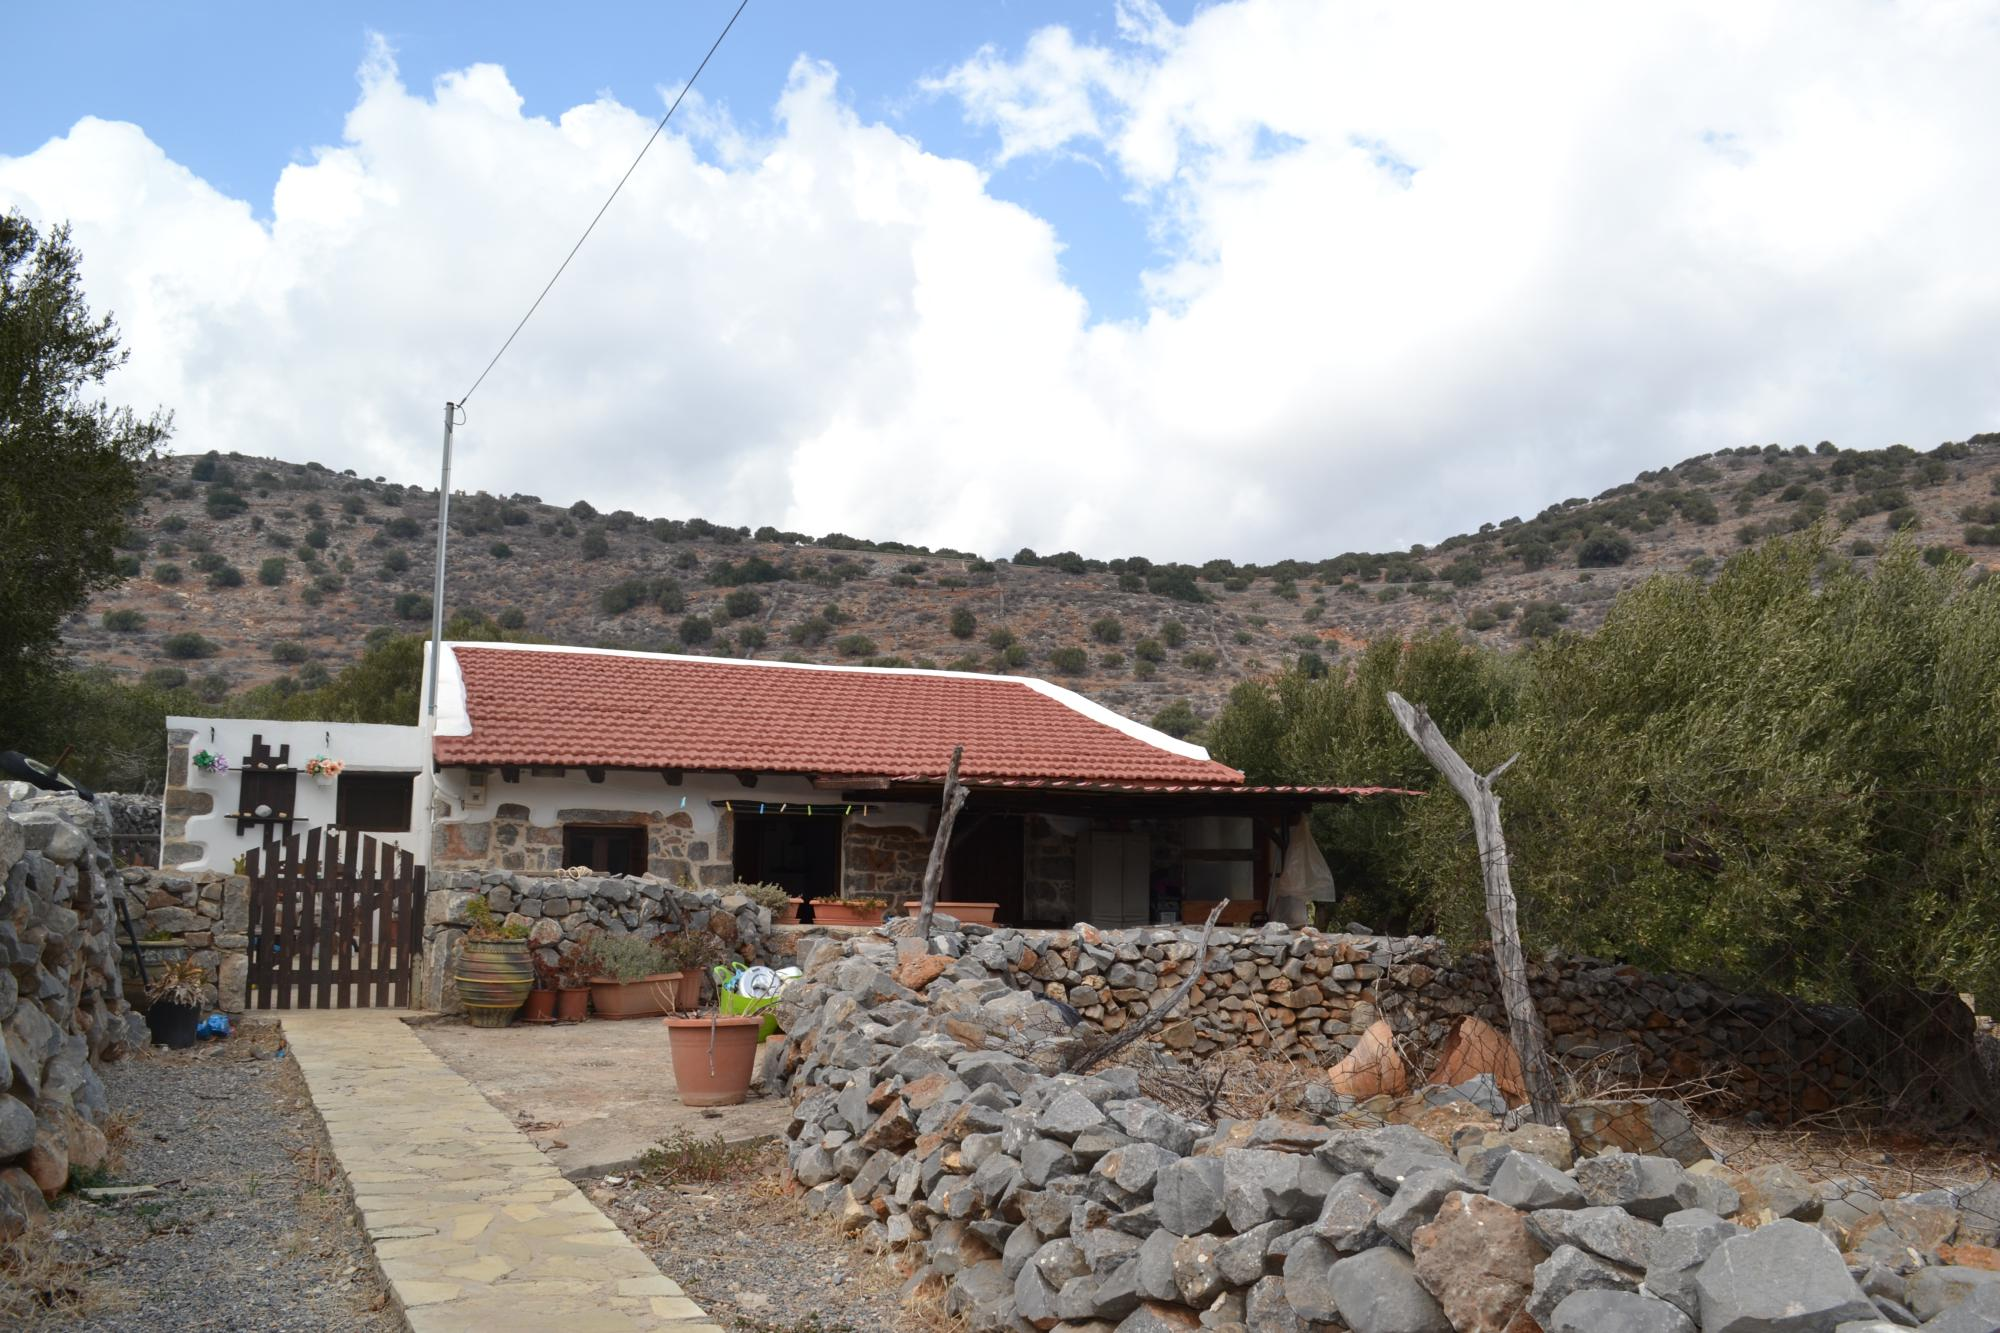 One bedroom stone cottage on private land near Elounda. Garden.